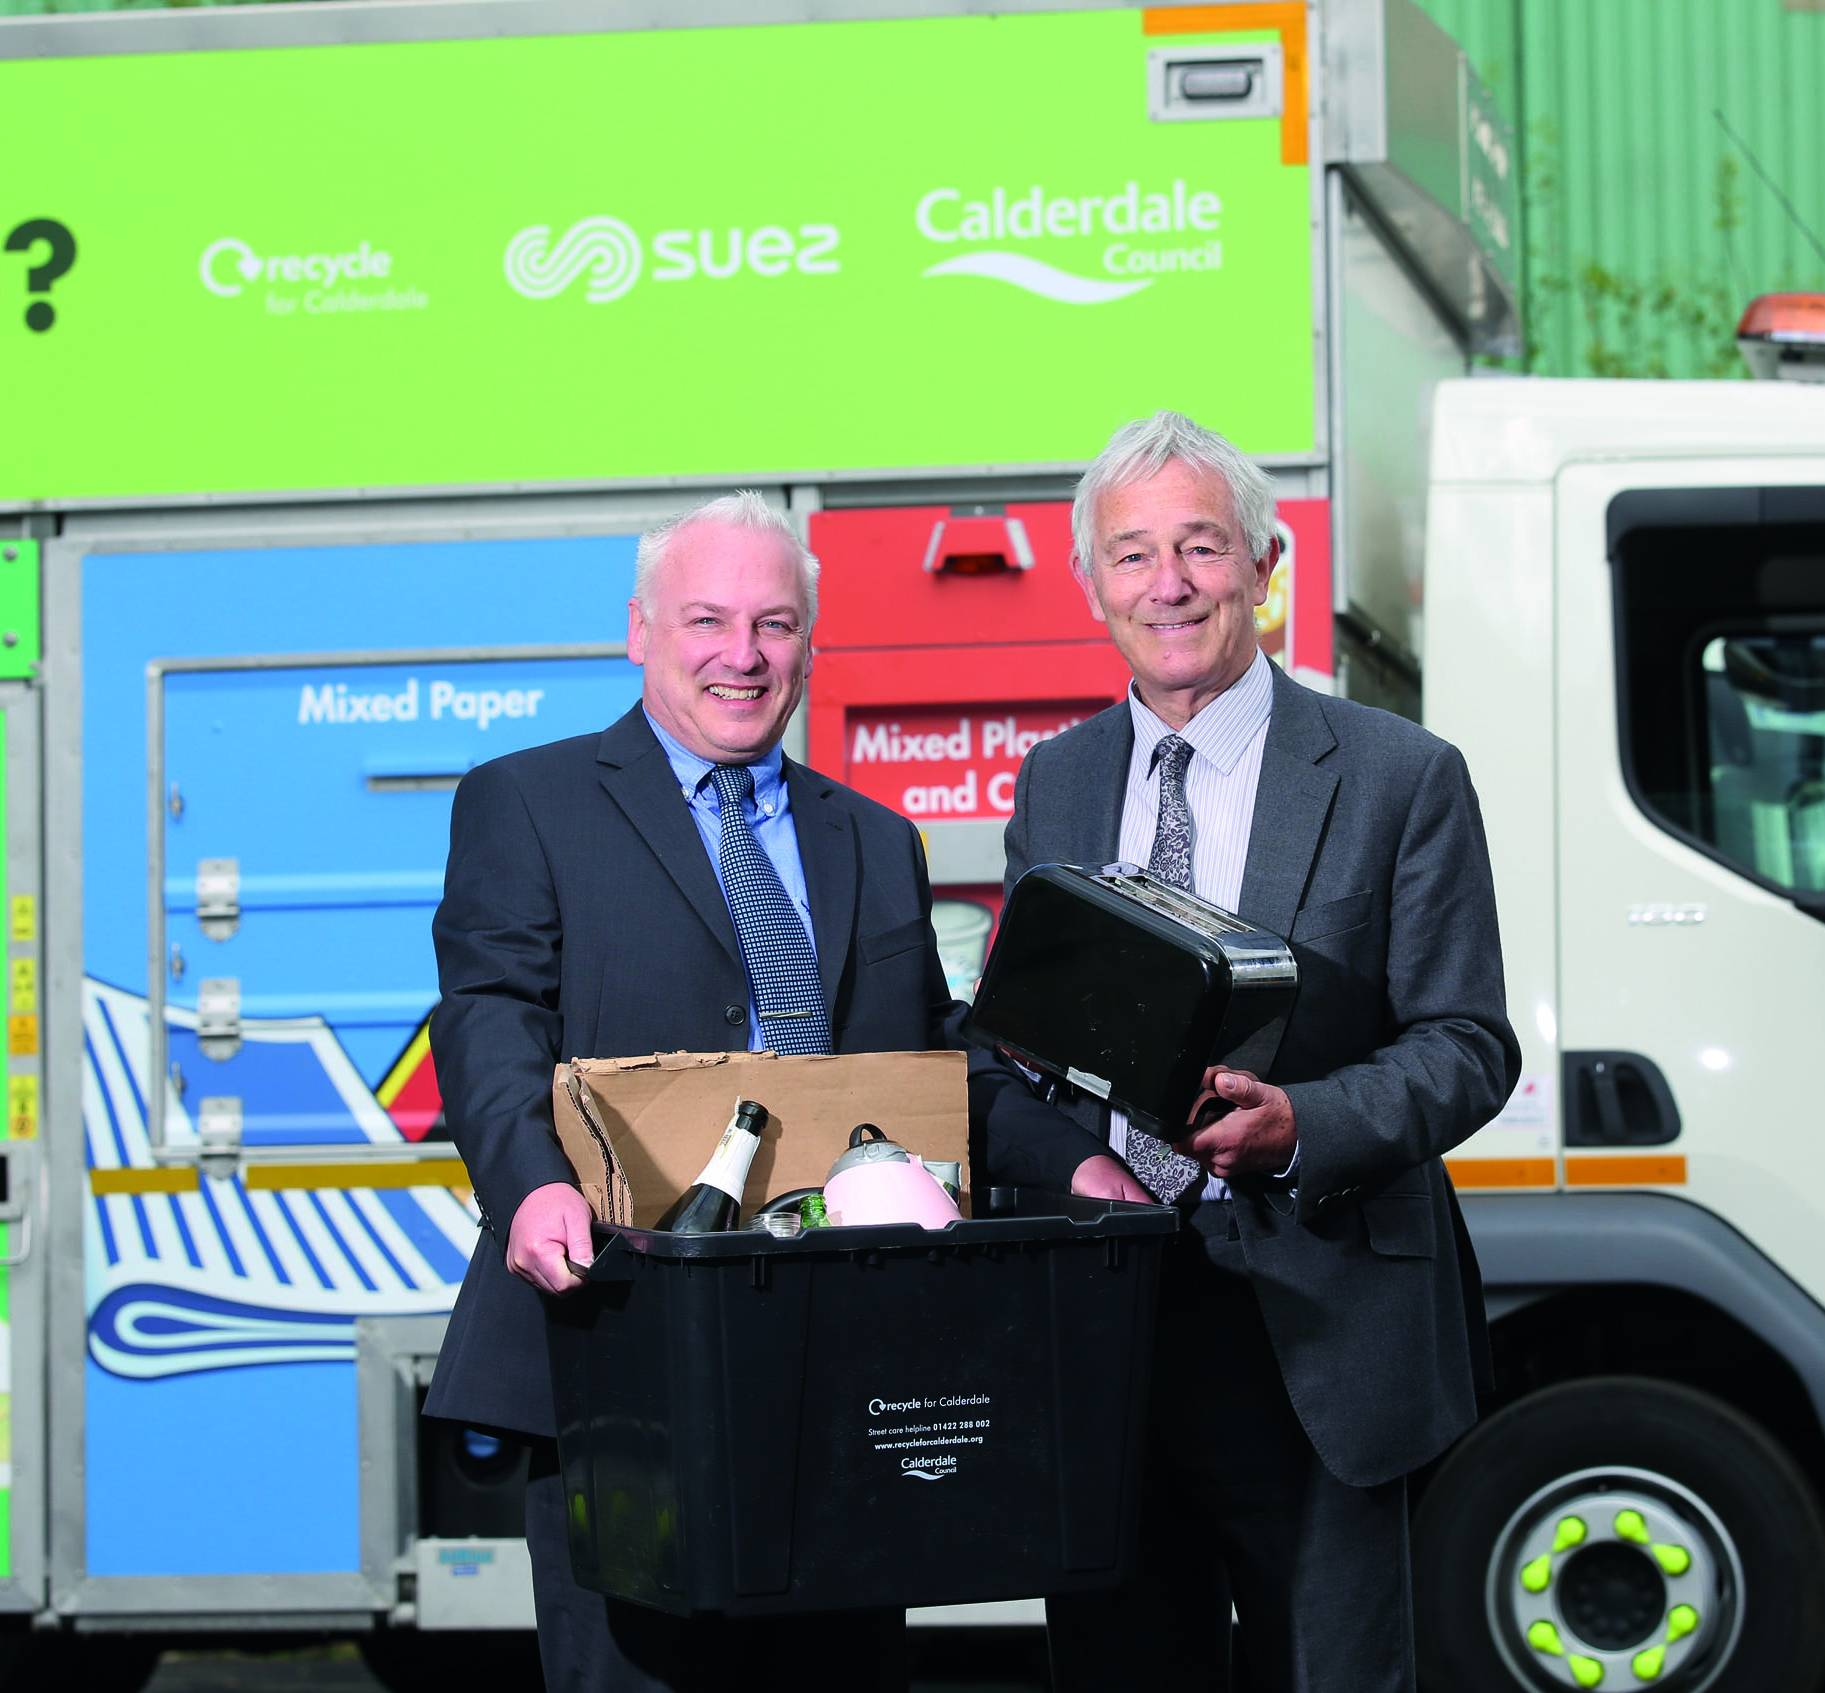 New waste and recycling services 1